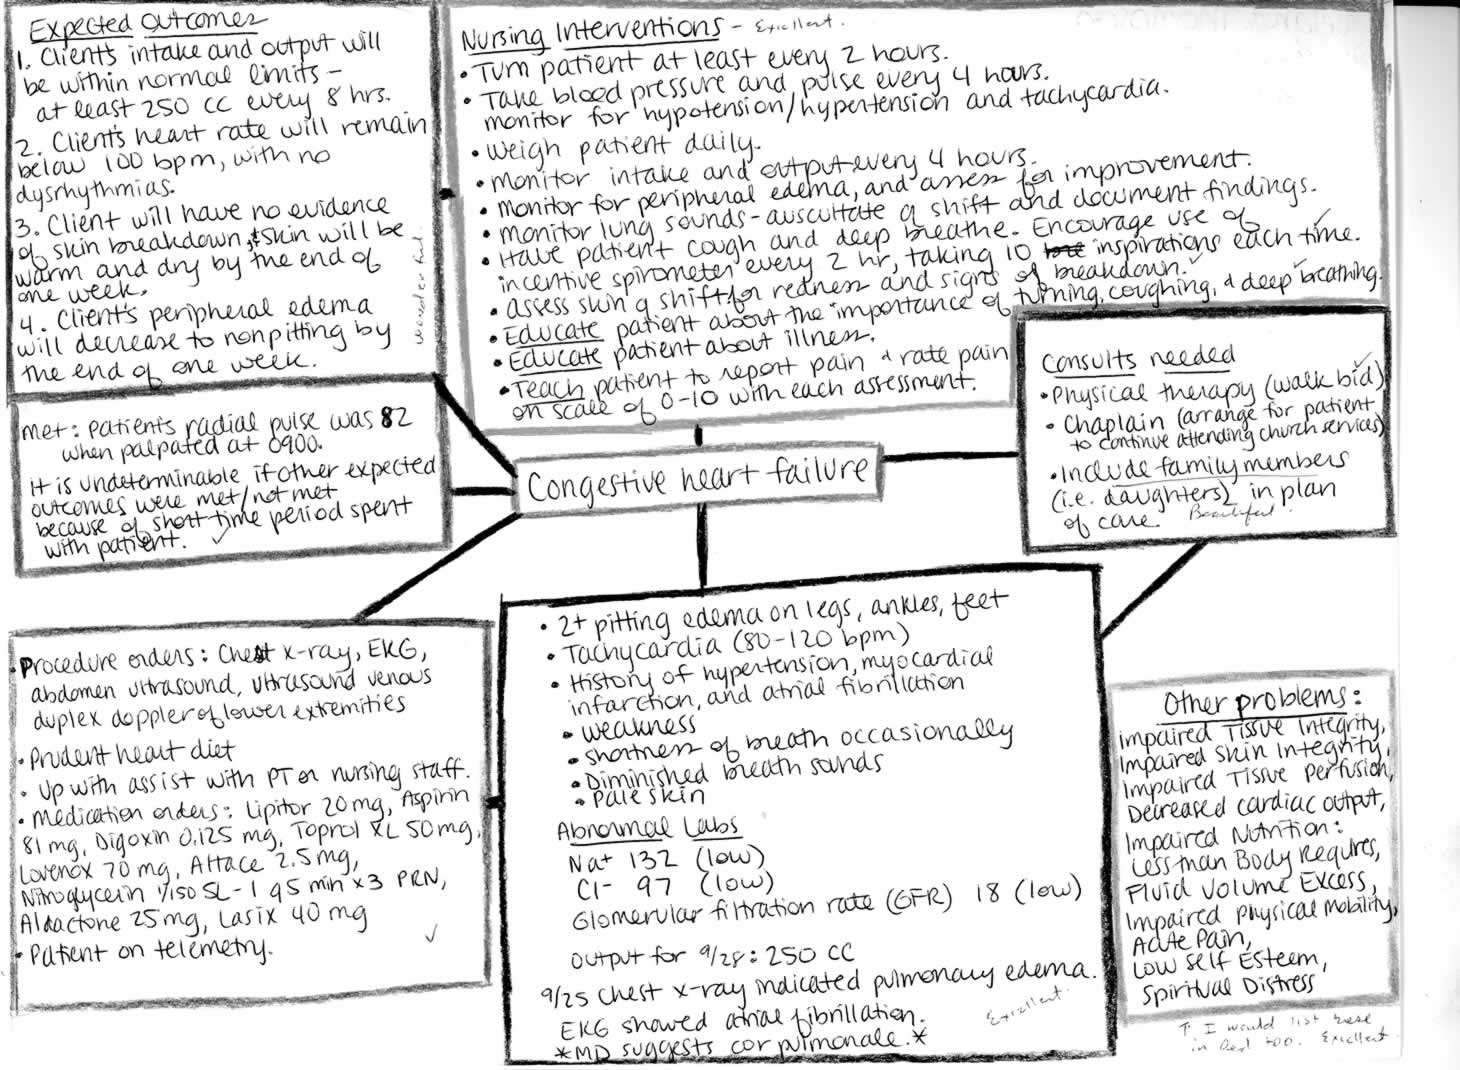 Nursing Concept Map Template http://www.questgarden.com/28/04/9/060616153332/process.htm